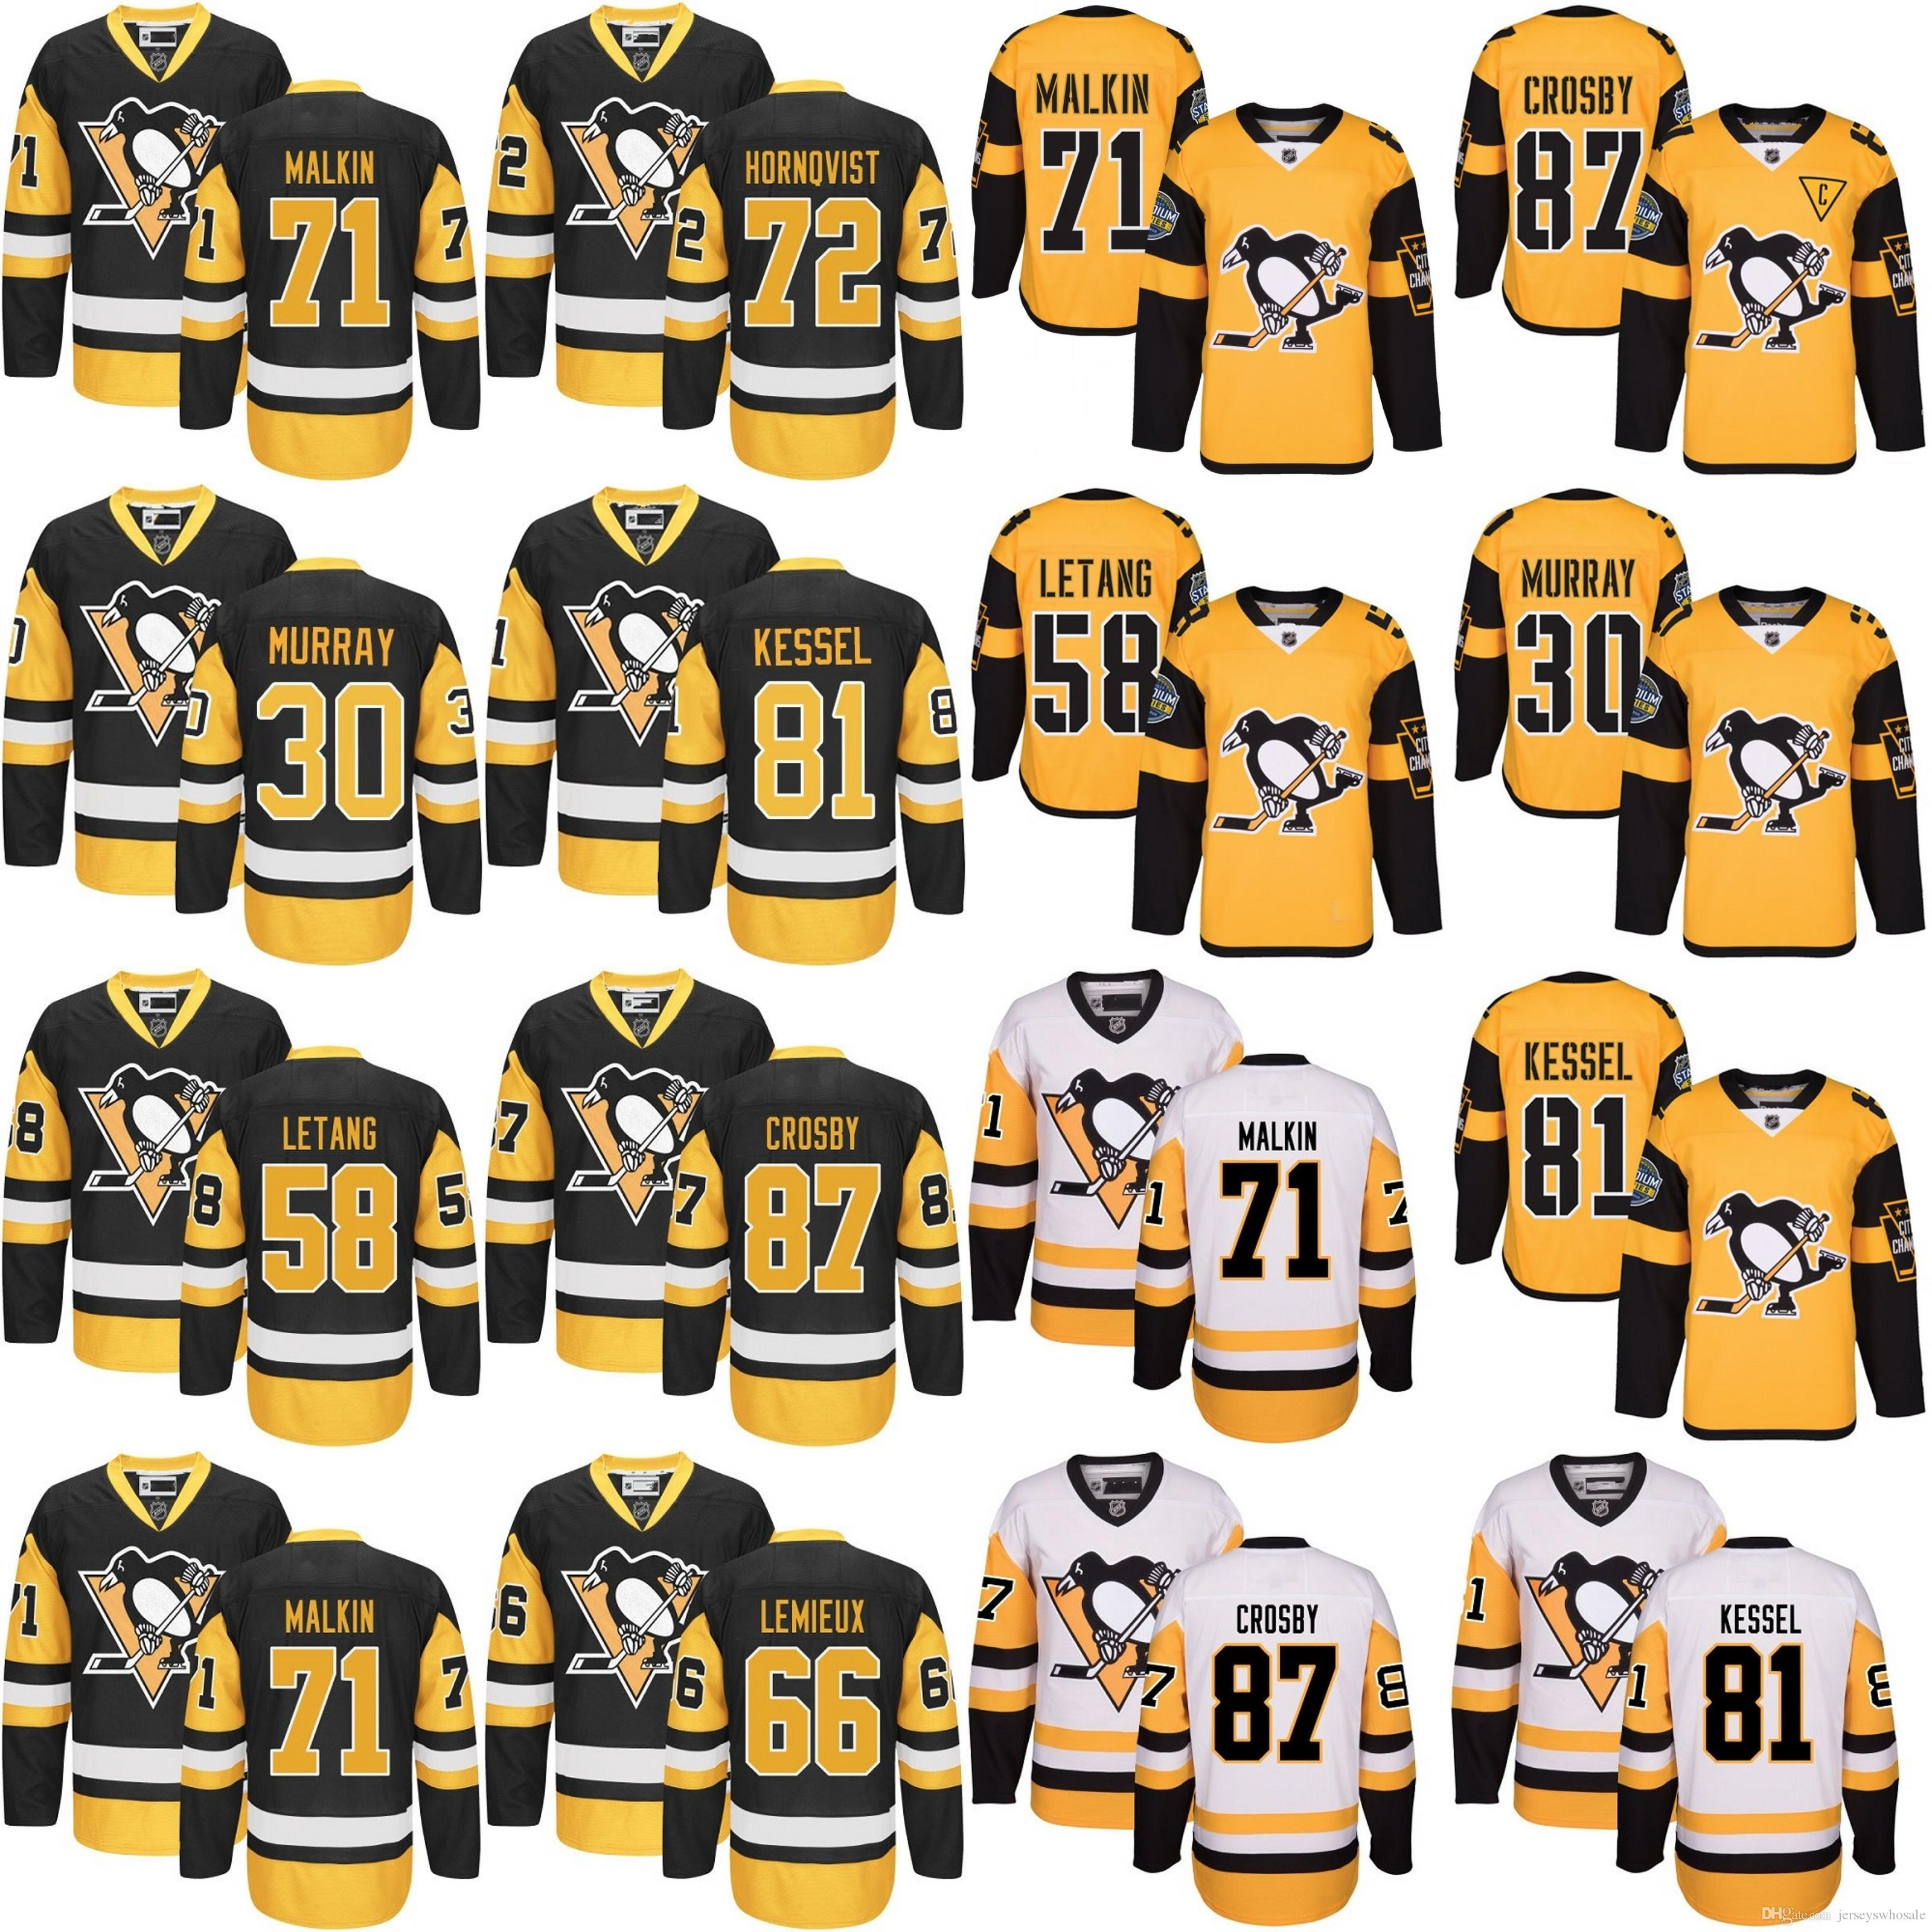 2017 Stanley Cup Champions Patch Pittsburgh Penguins Hockey Jersey ... 620b1f753